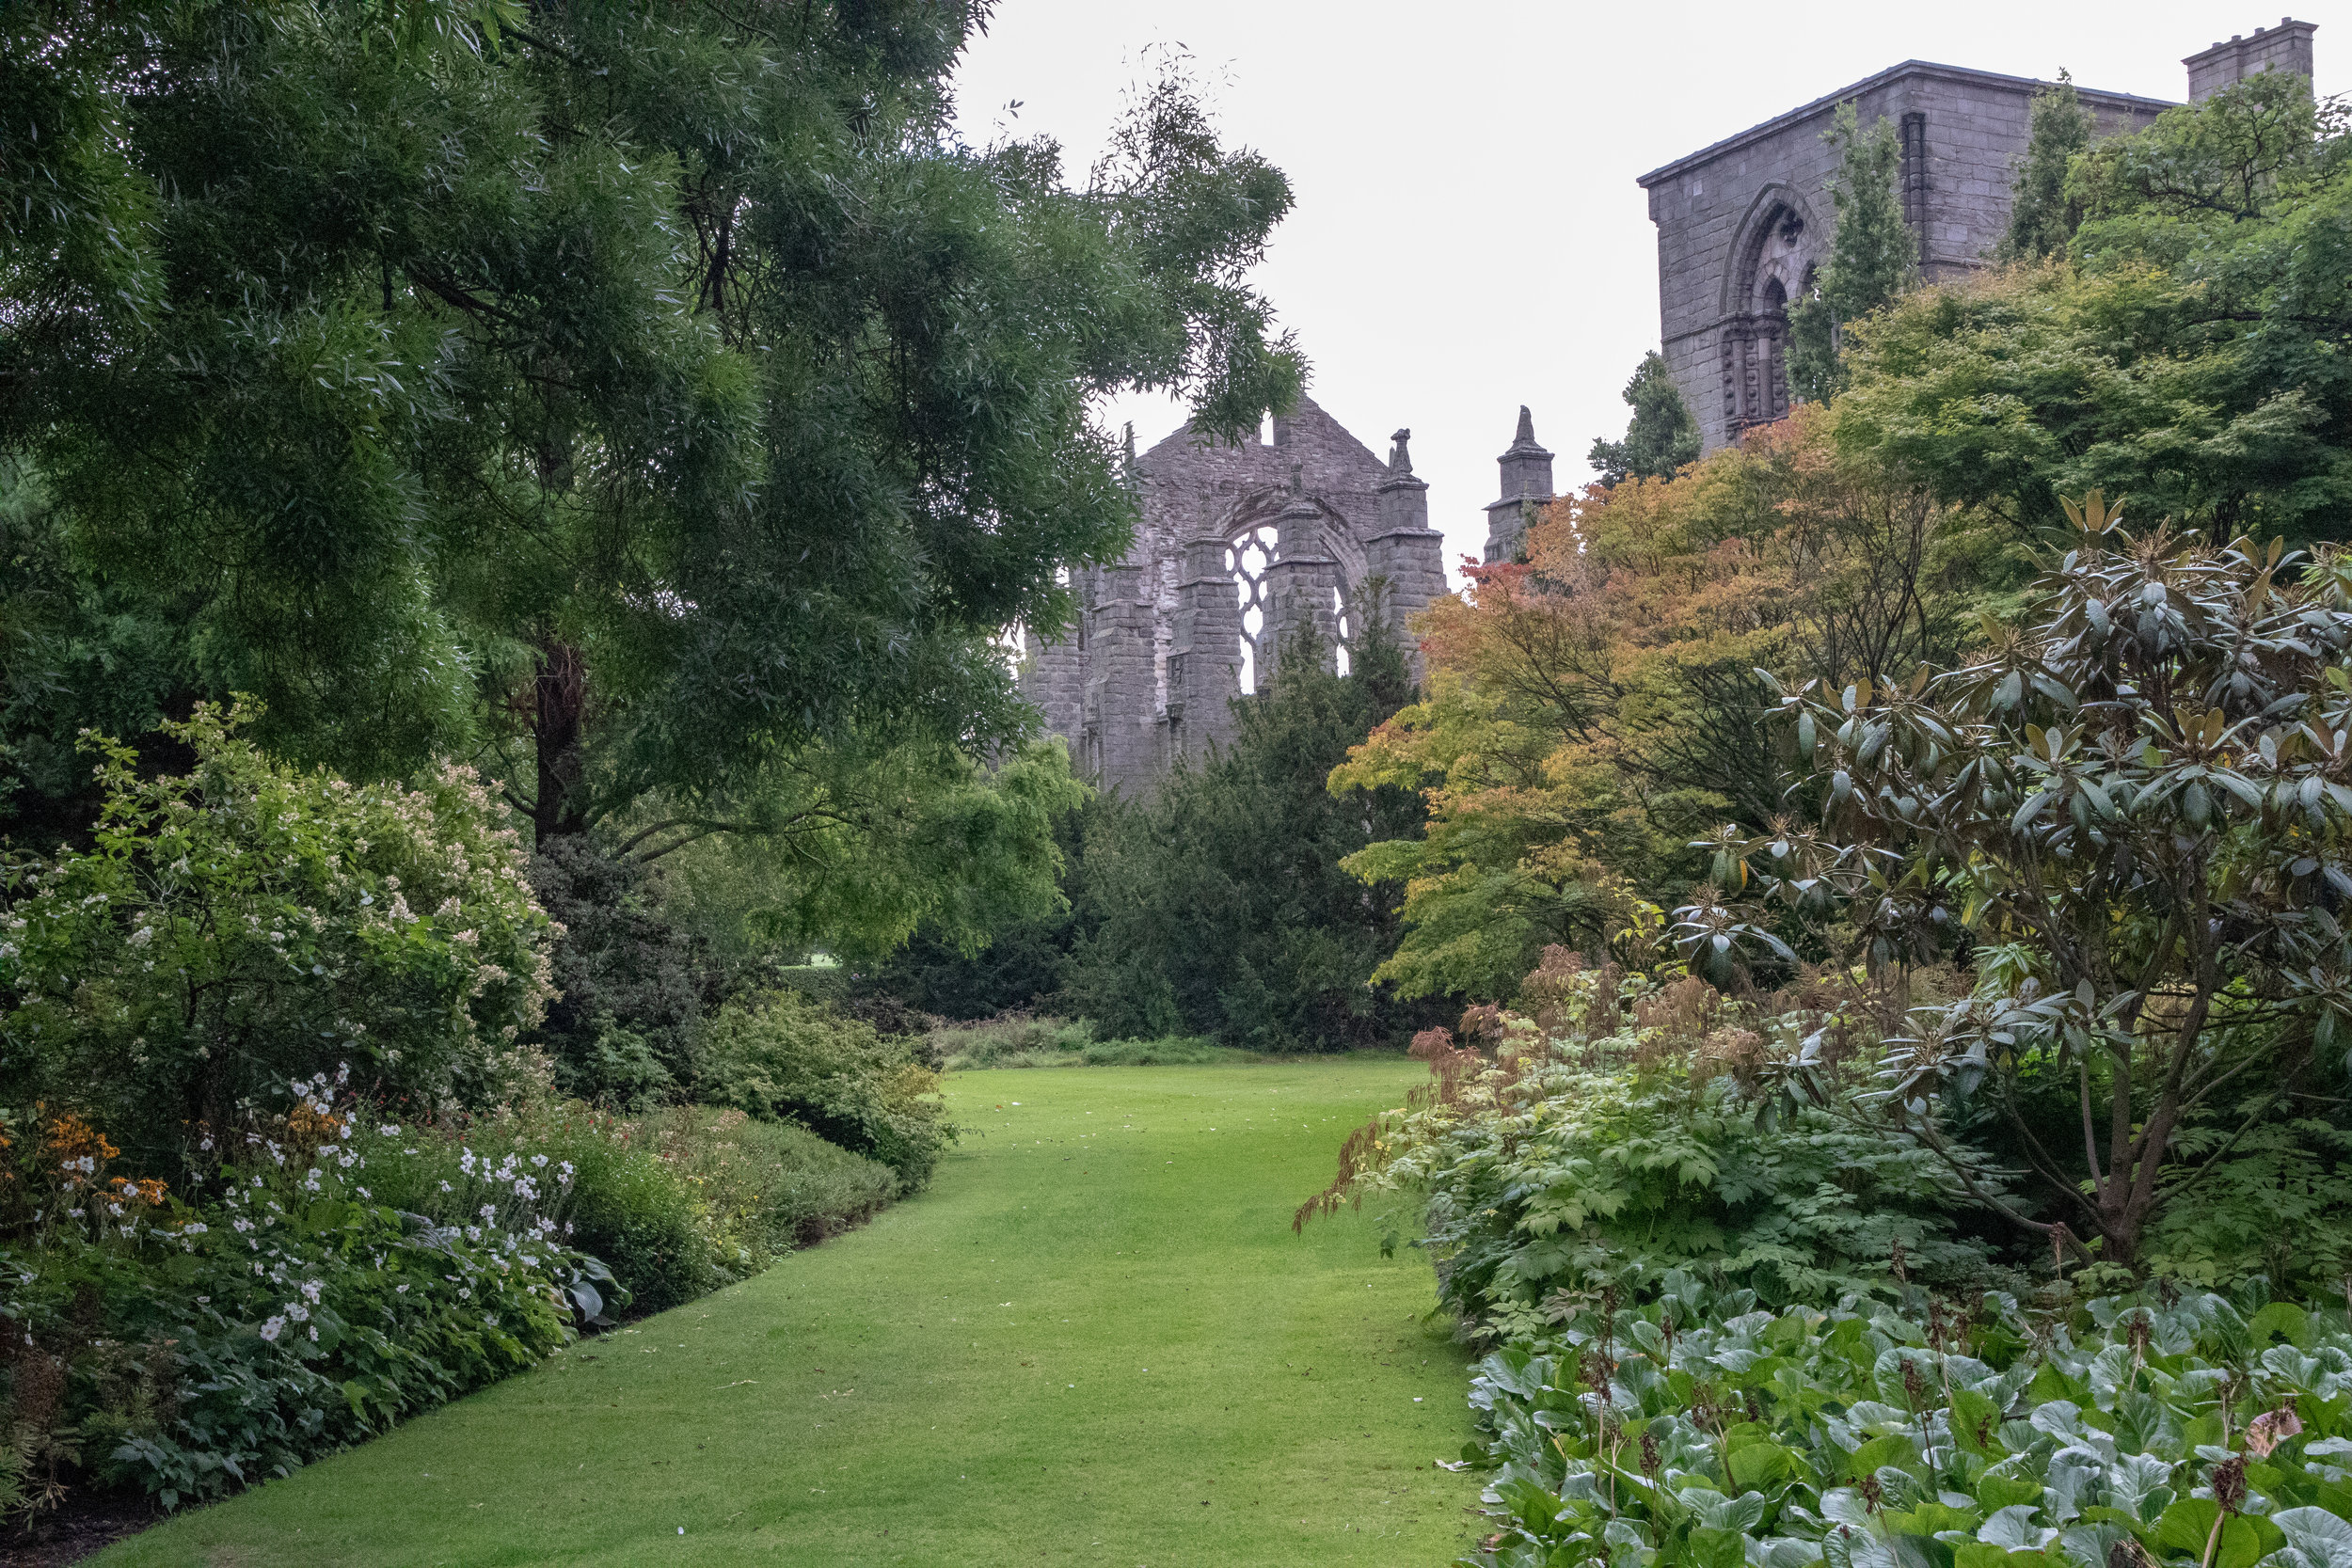 Taken from the gardens outside of the abbey at The Palace of Holyroodhouse in Edinburgh, Scotland.